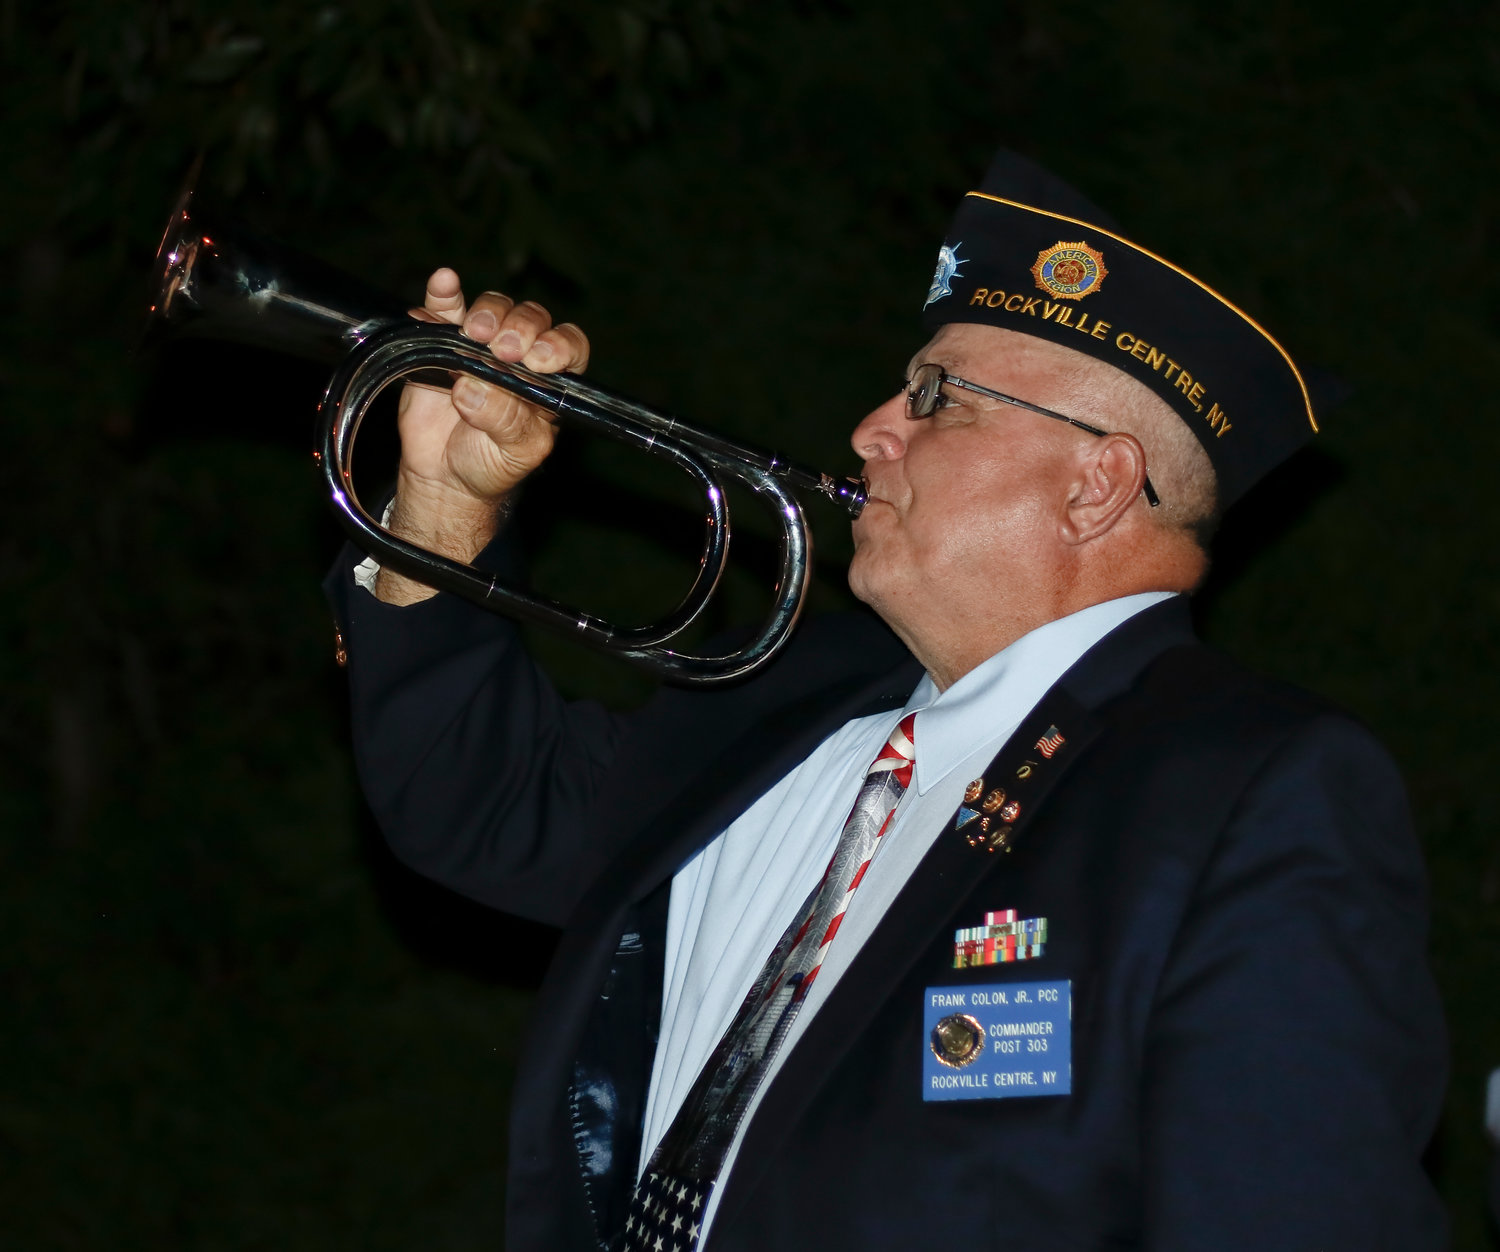 American Legion Post Commander Frank Colon played taps at the end of the ceremony.